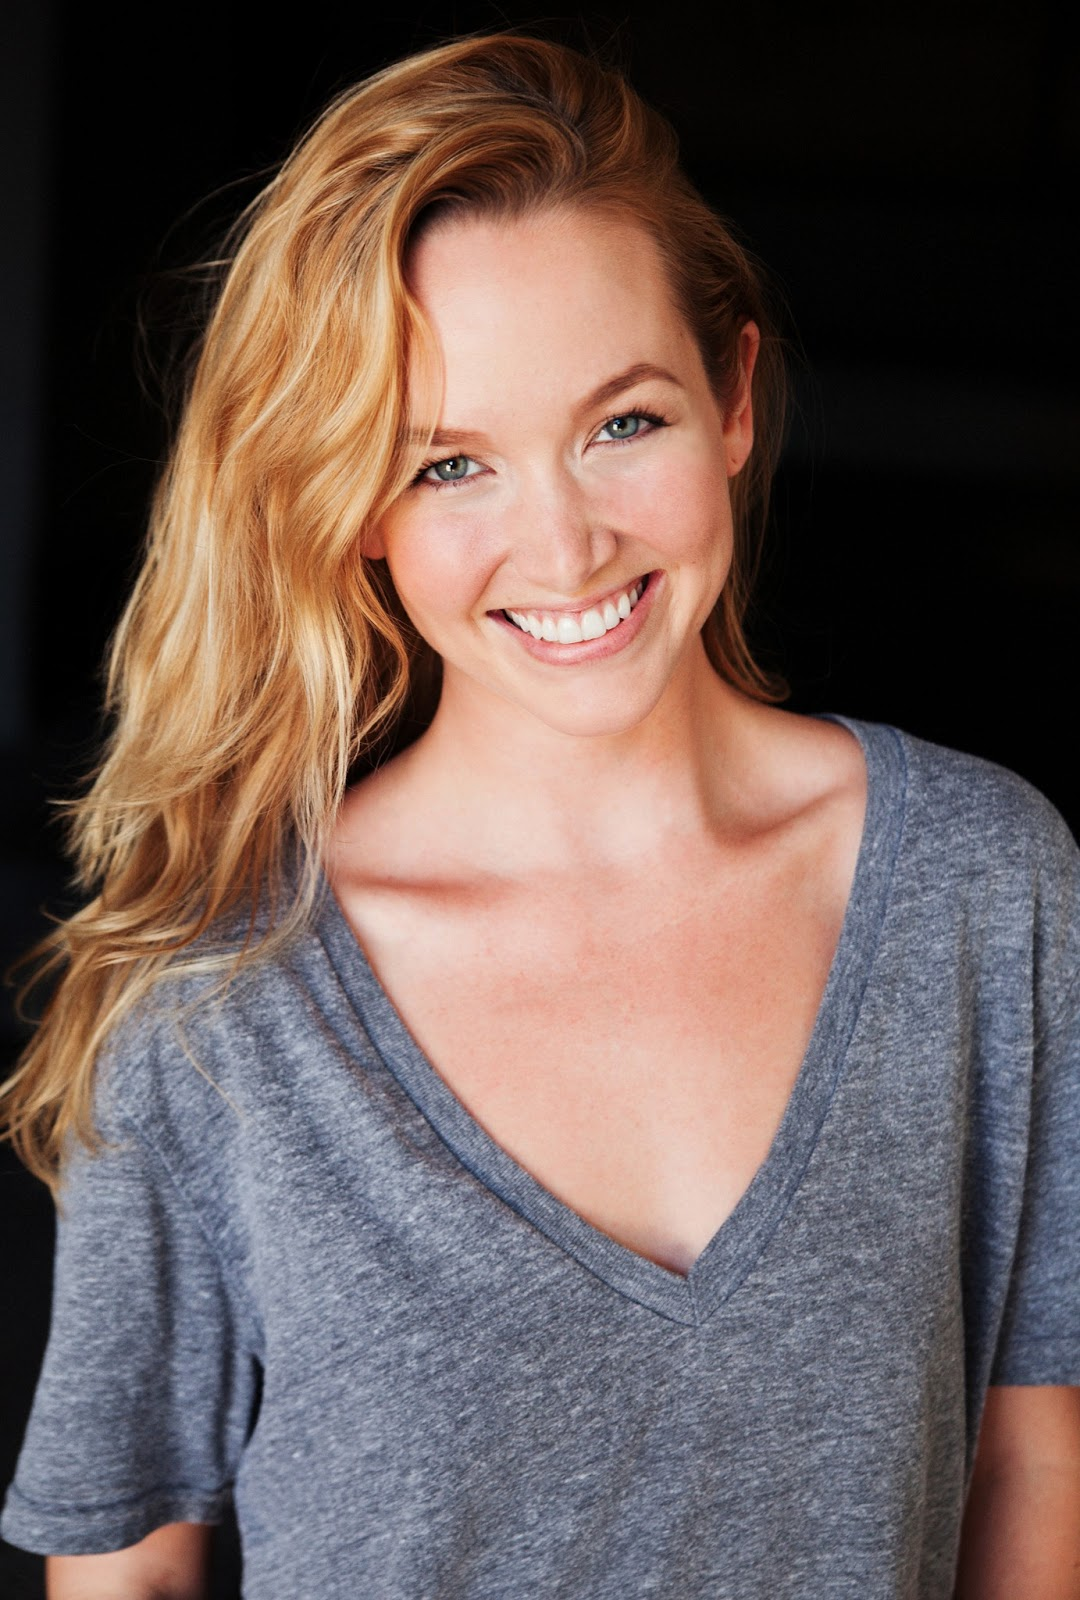 Happy Birthday to one of the sweetest #Bellas, Kelley Jakle ...